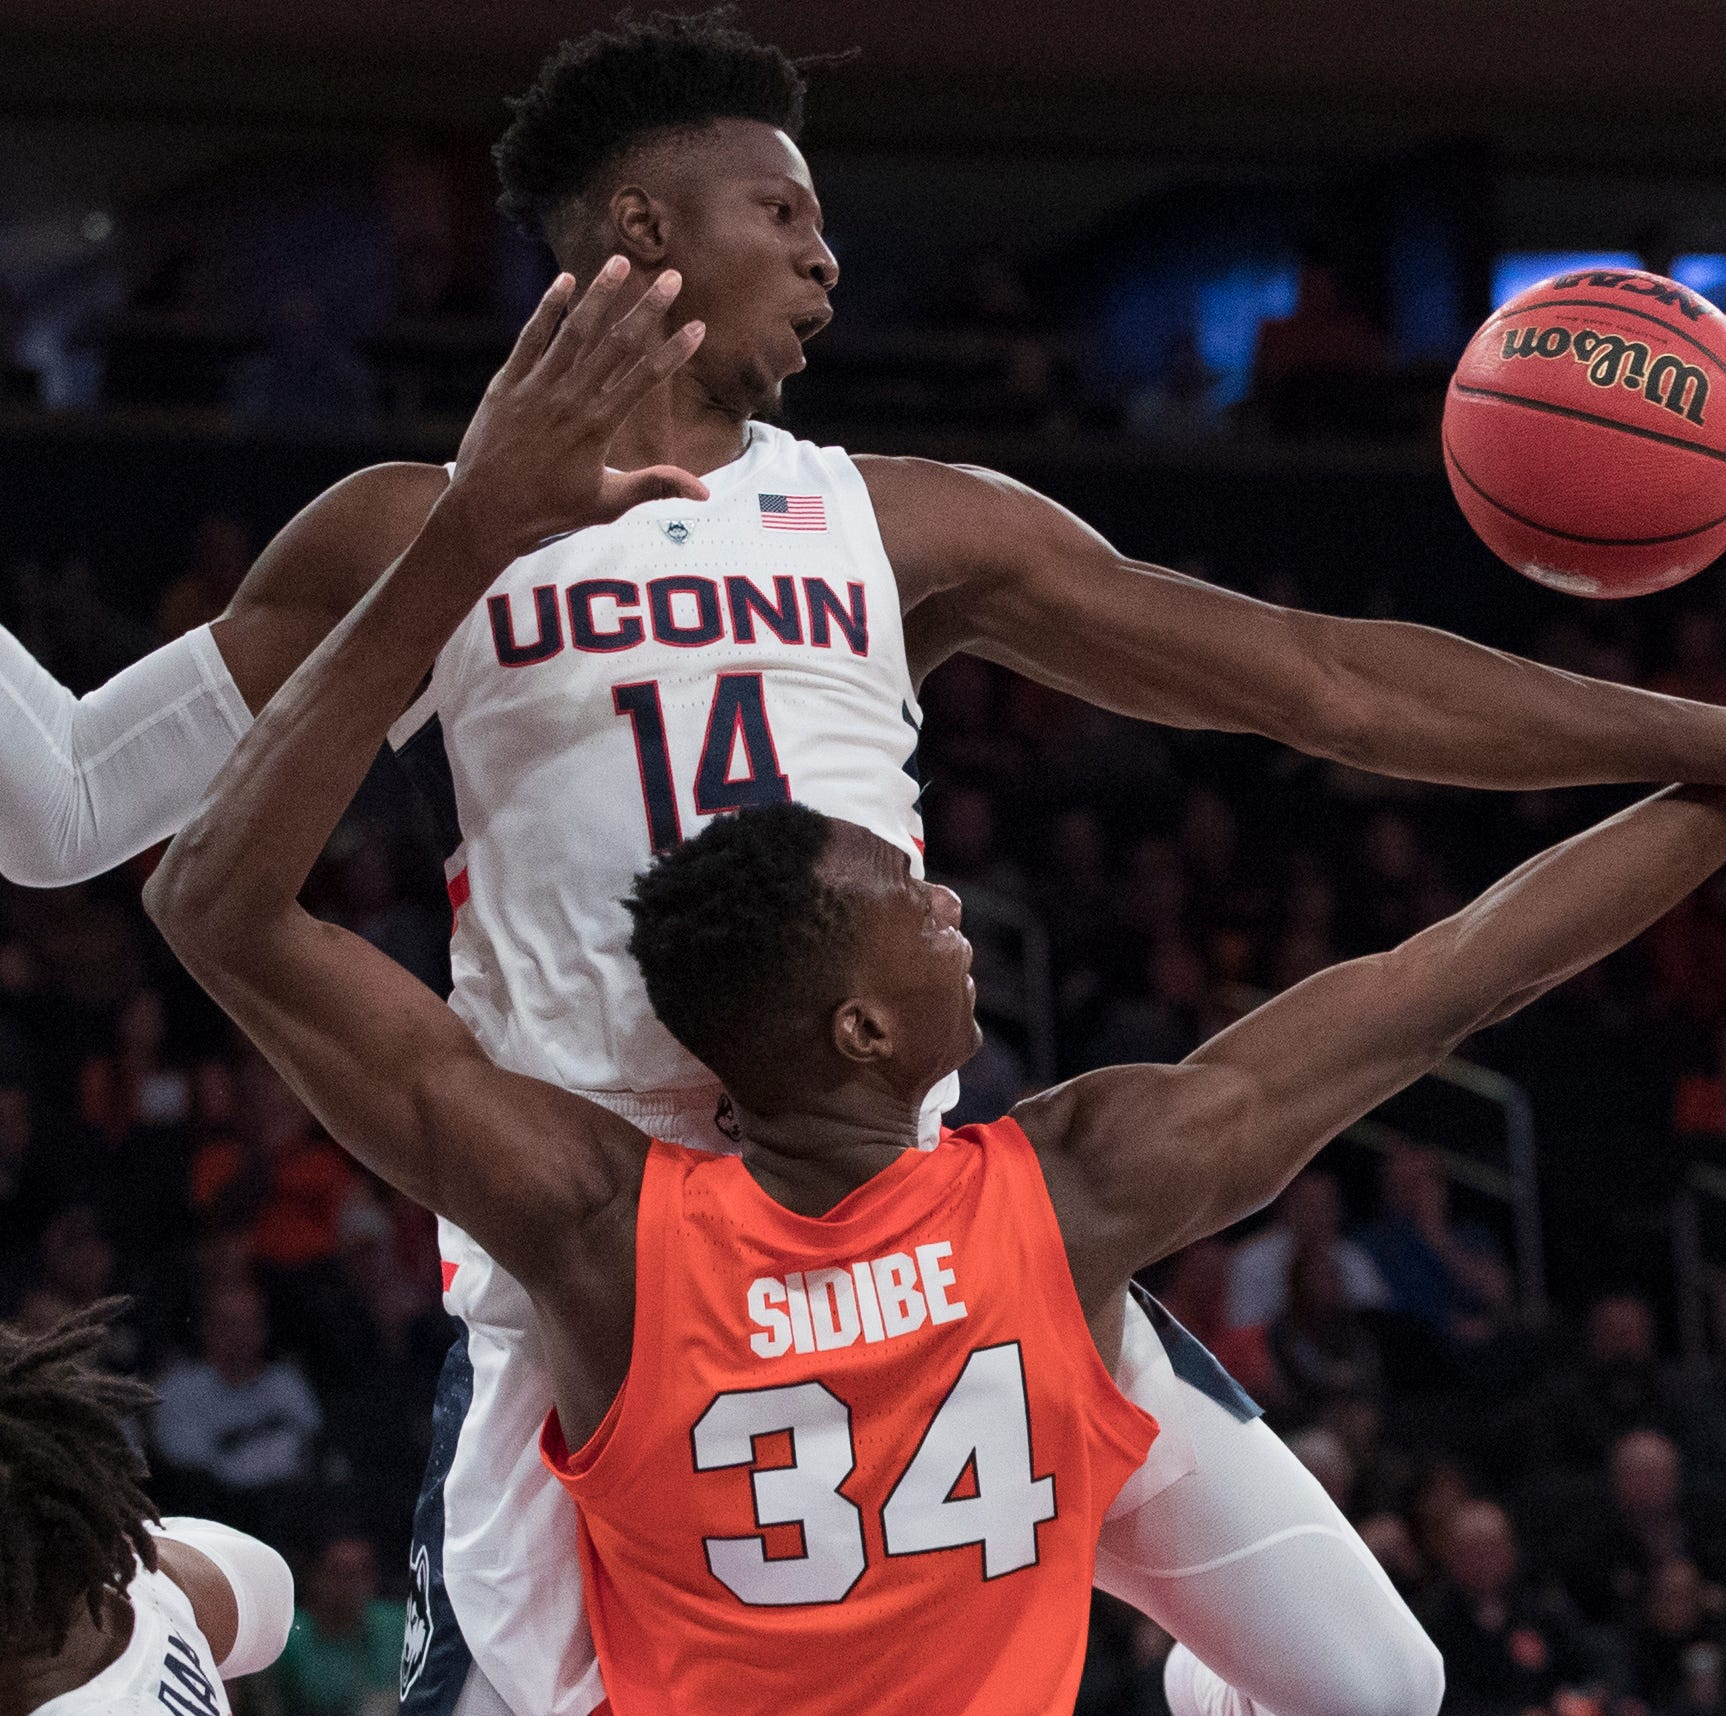 Syracuse falls to old rival UConn in 2K Empire Classic semifinal